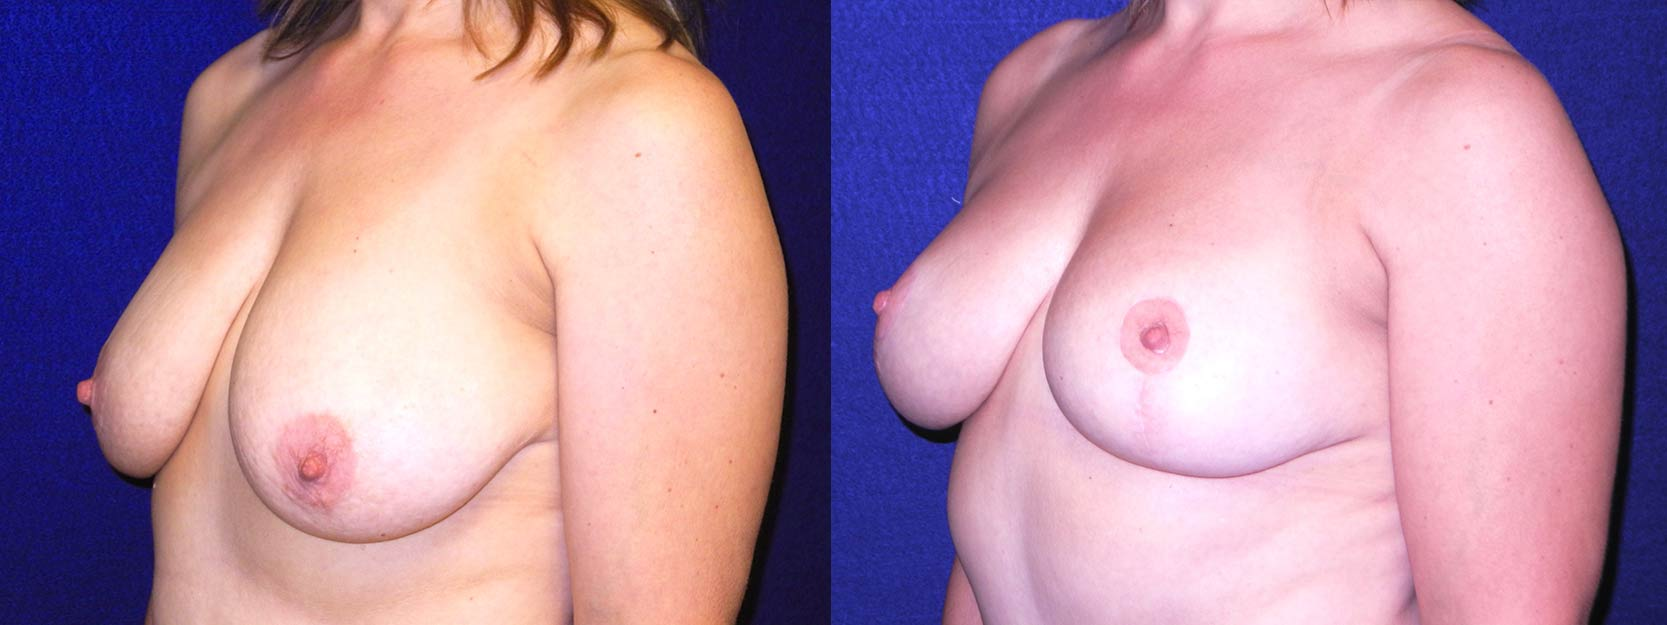 Left 3/4 View - Breast Lift After Pregnancy & Weight Loss